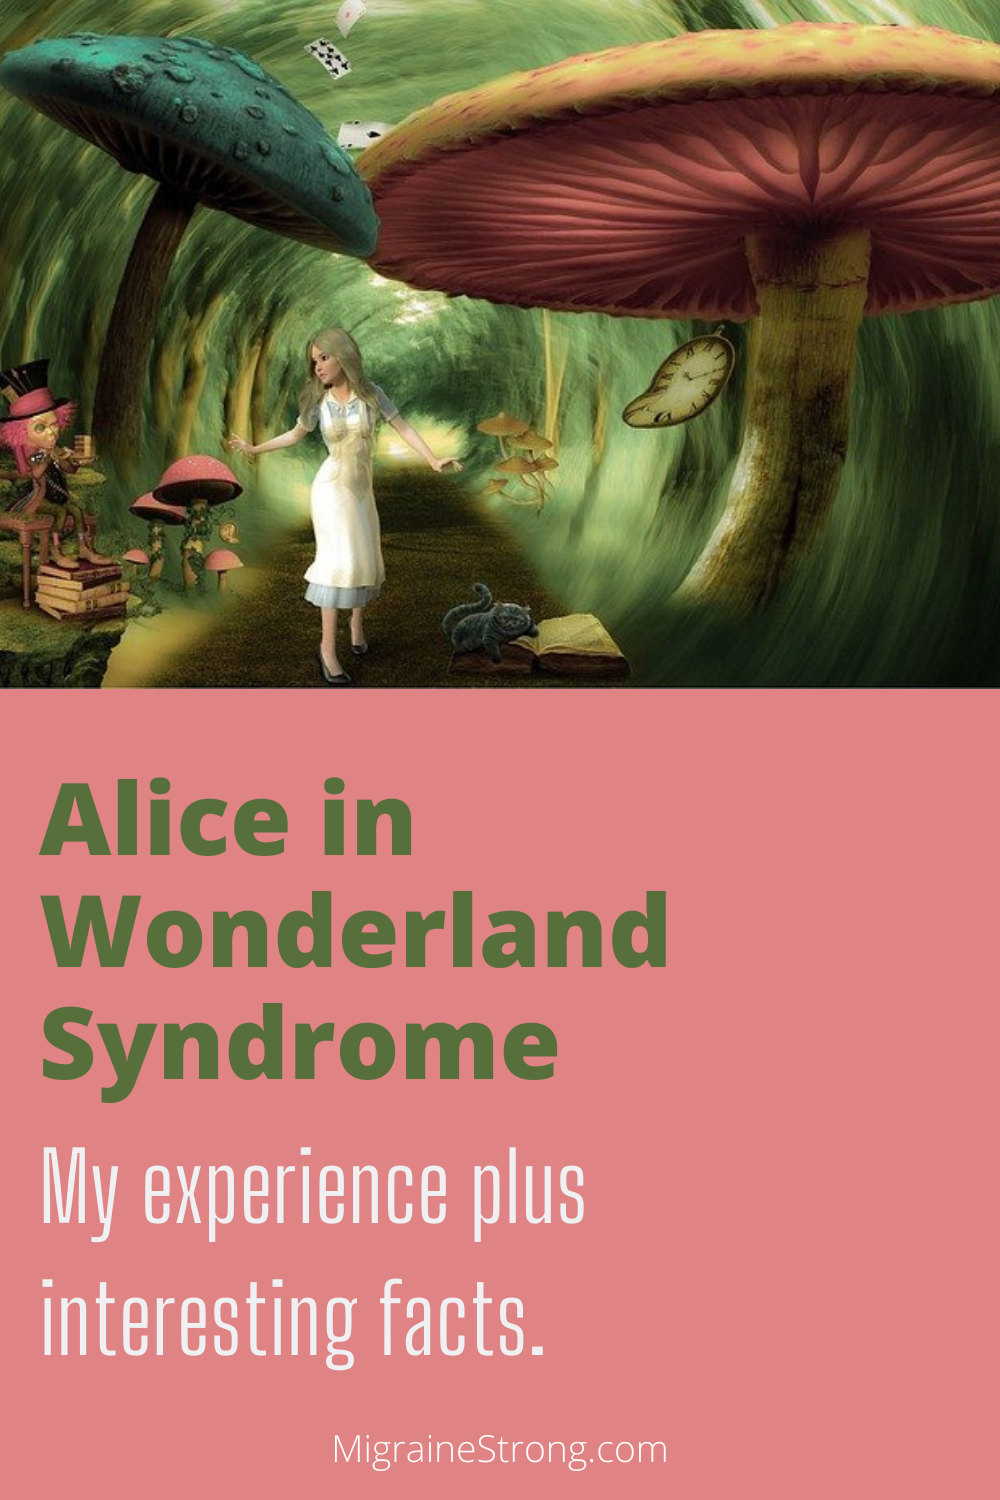 Alice in Wonderland Syndrome - Interesting Facts and My Personal Experience